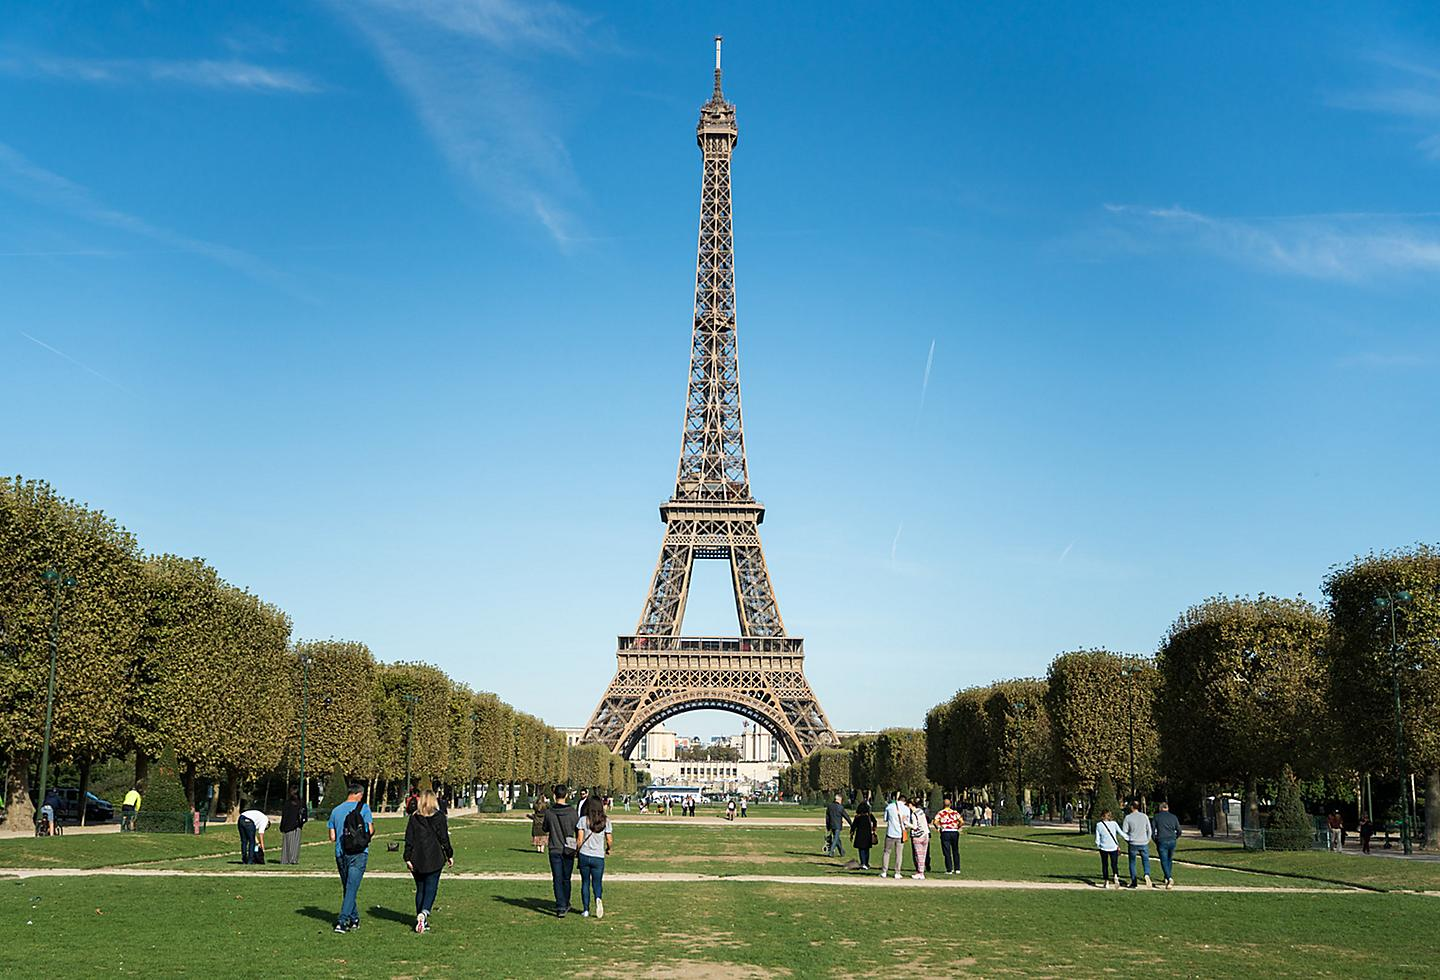 Paris France Eiffel Tower Park during Day Time